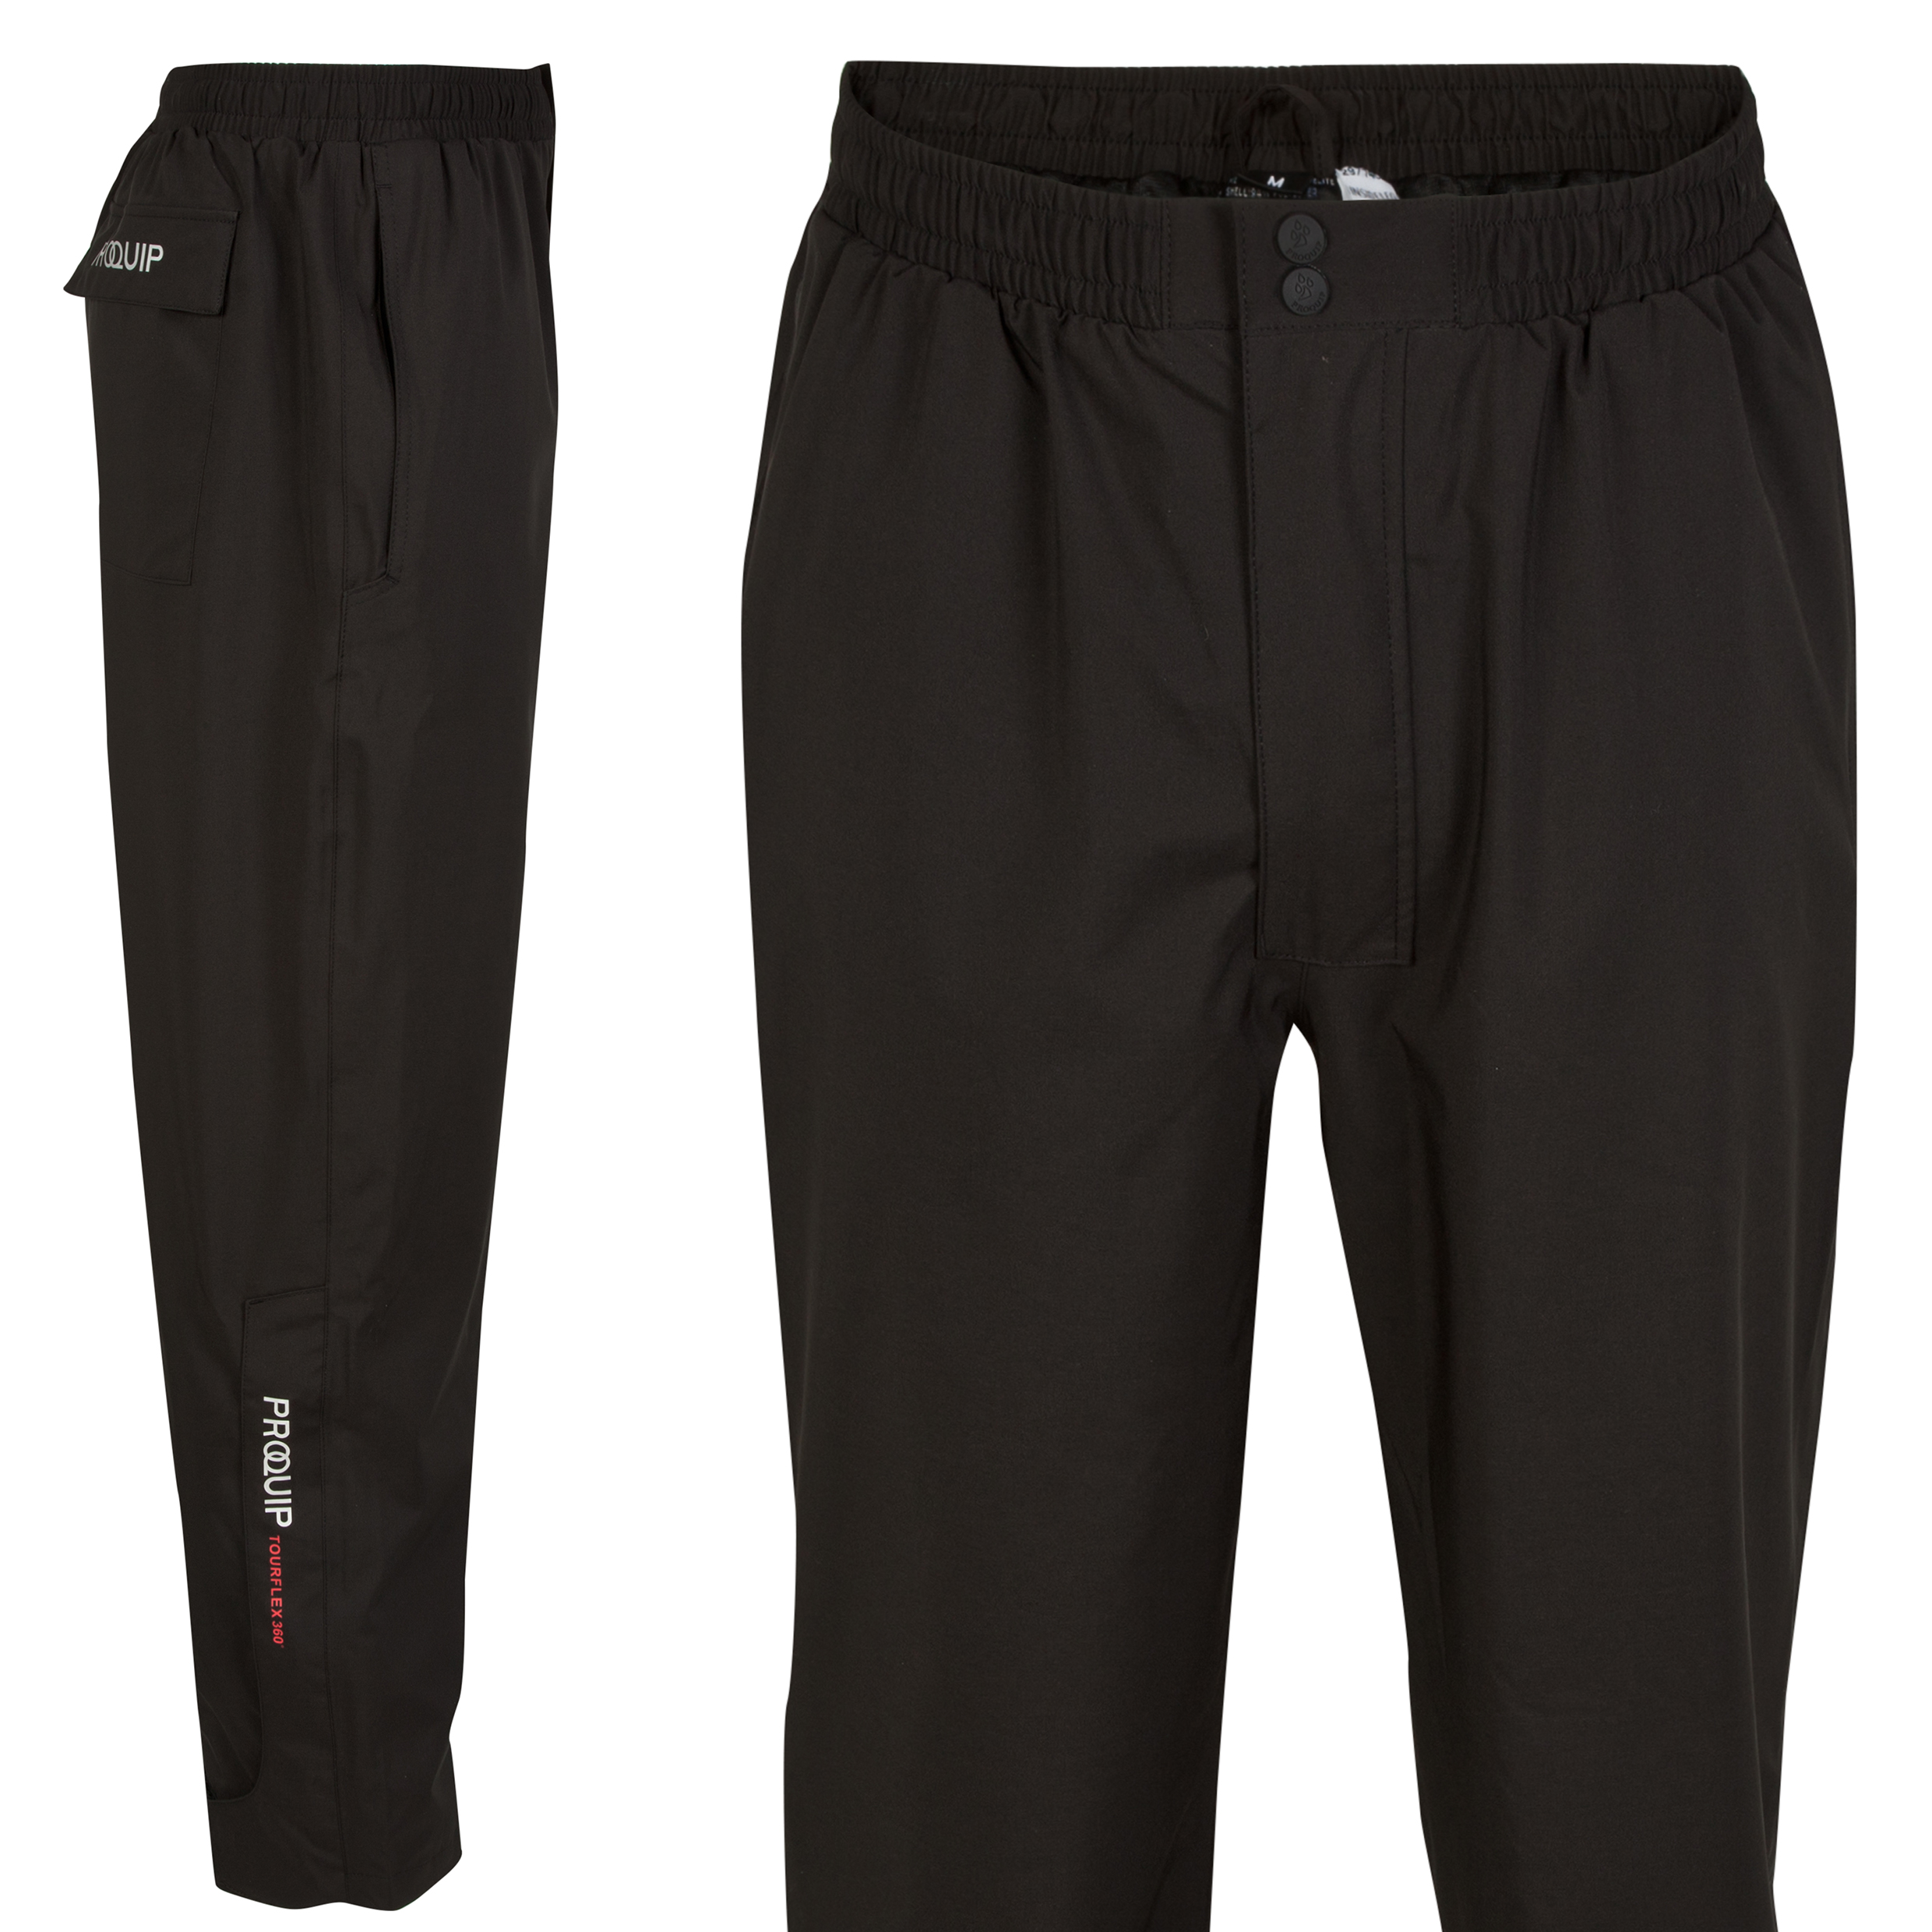 The 2014 Ryder Cup Tourflex Waterproof Trouser 33 Inch Leg Black